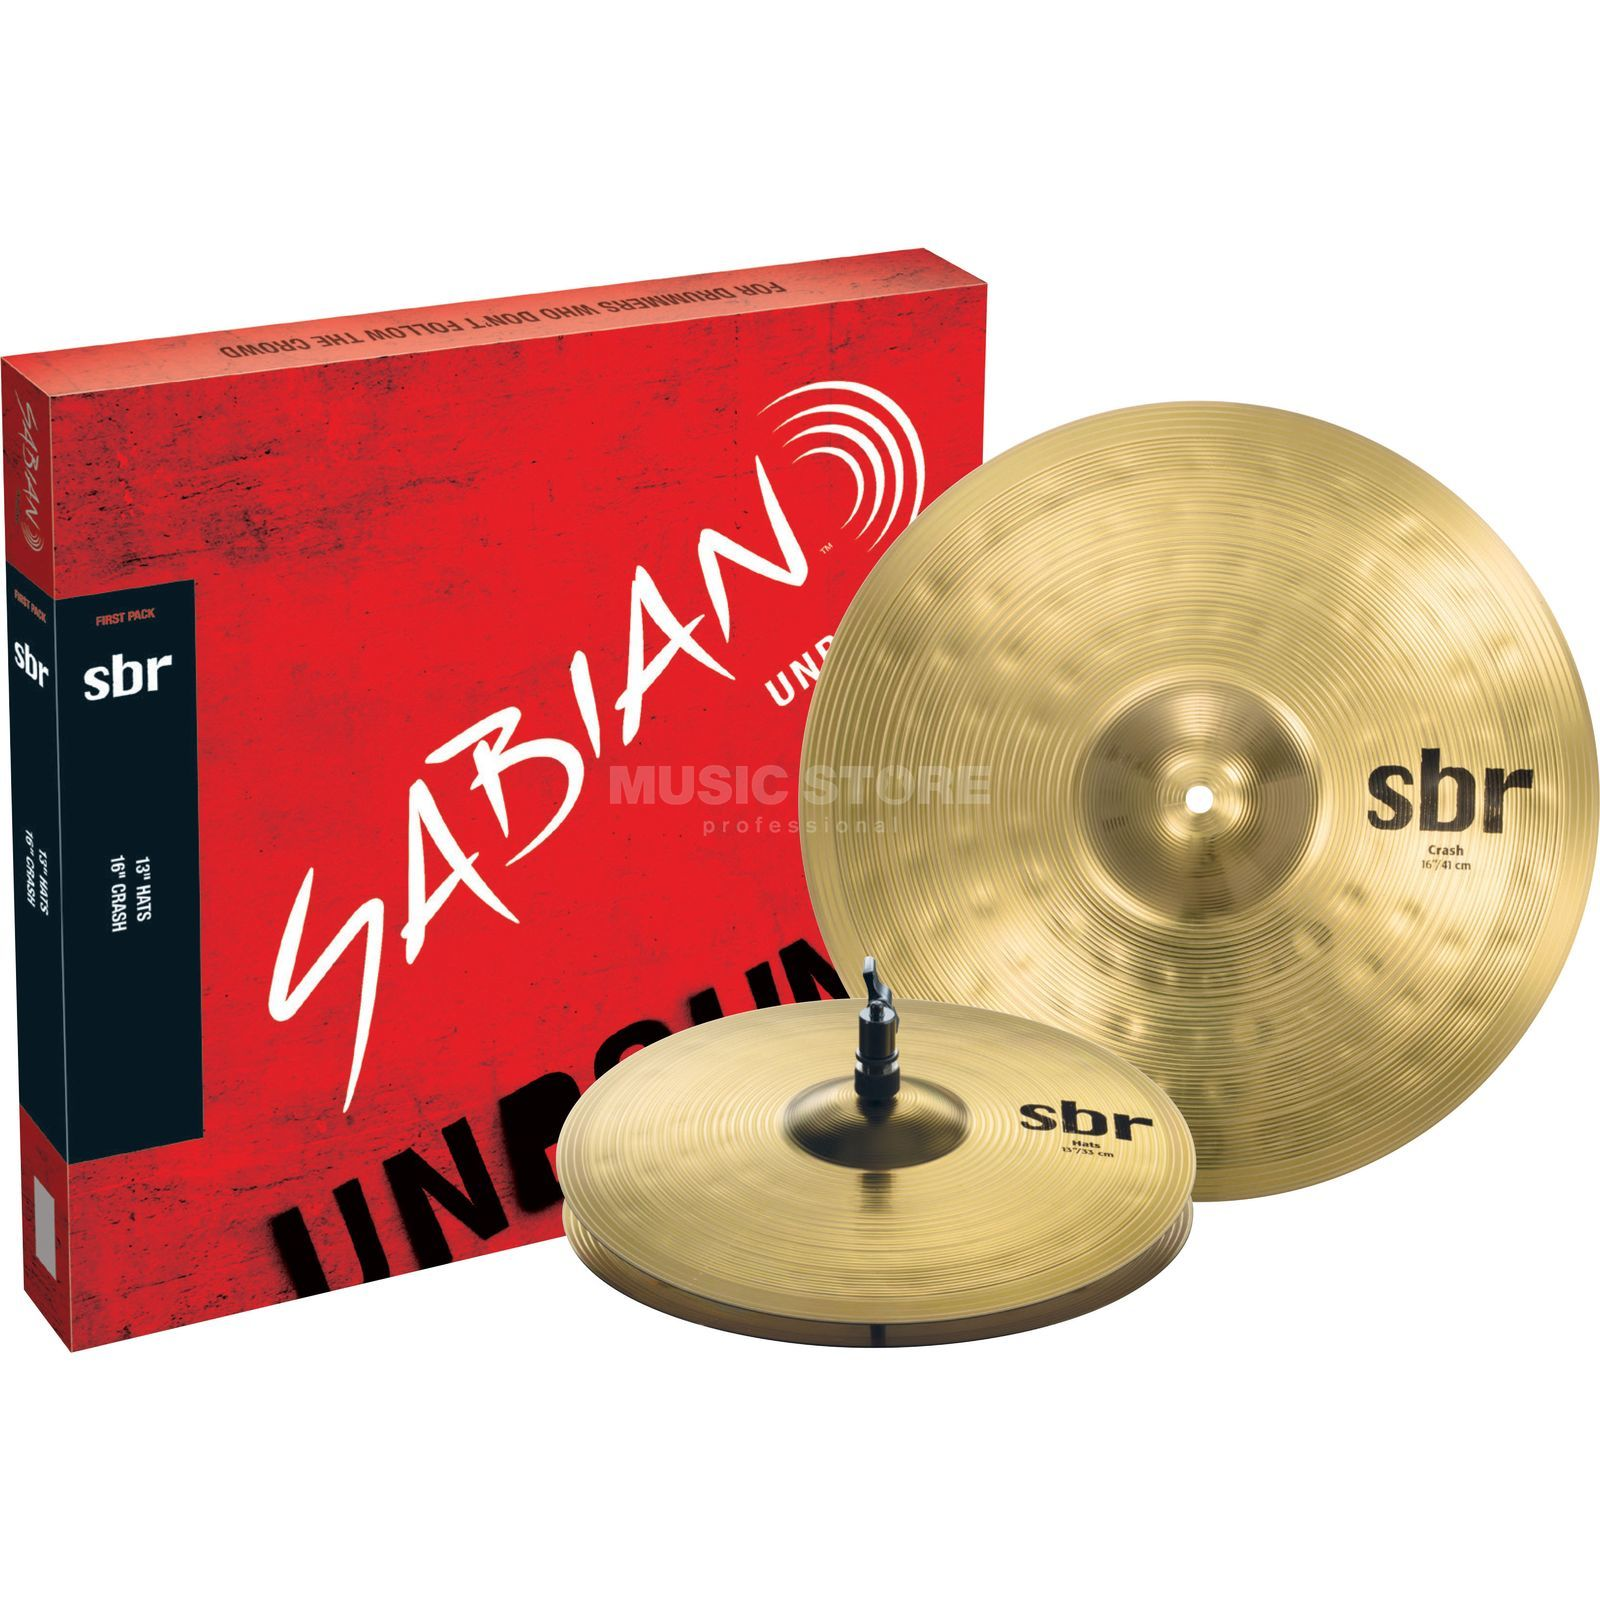 "Sabian sbr First Pack, 13"" HiHat, 16"" Crash Produktbillede"